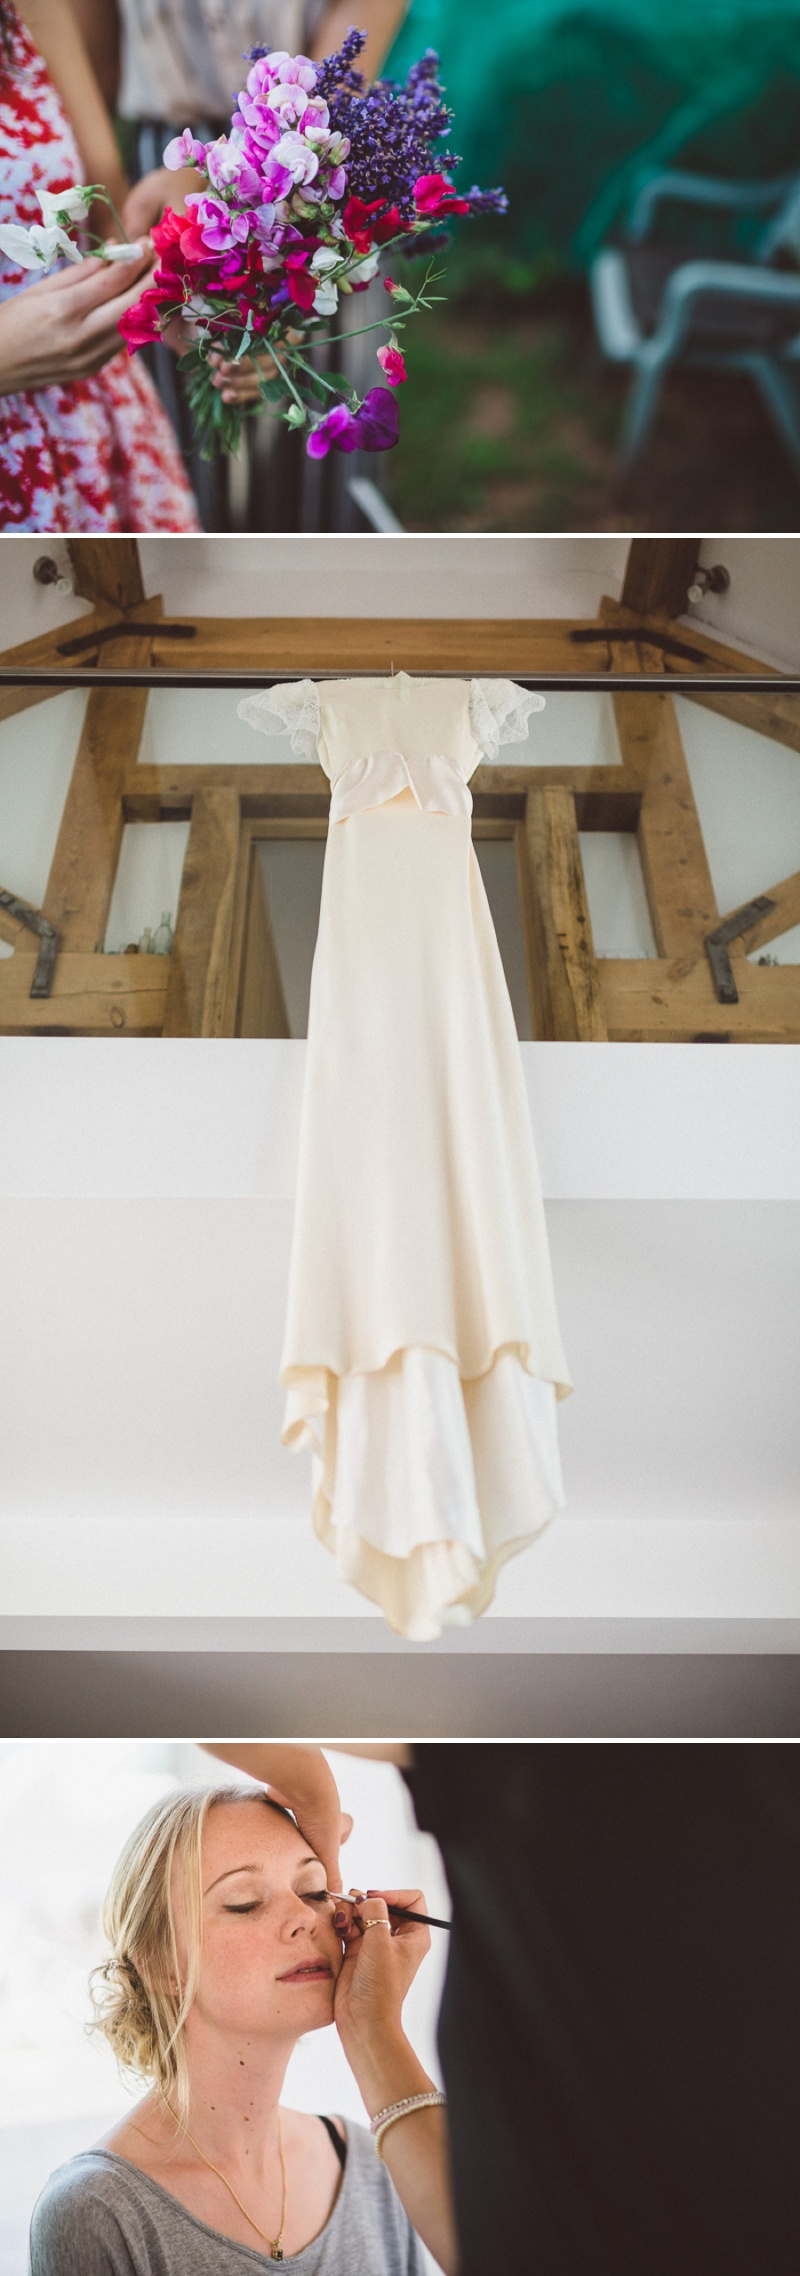 A Beautiful Bohemian Back Garden English Wedding With A Silk Charlie Brear Dress With Lace Cap Sleeves And Flower Crowns From Rhys Parker Photography._0003